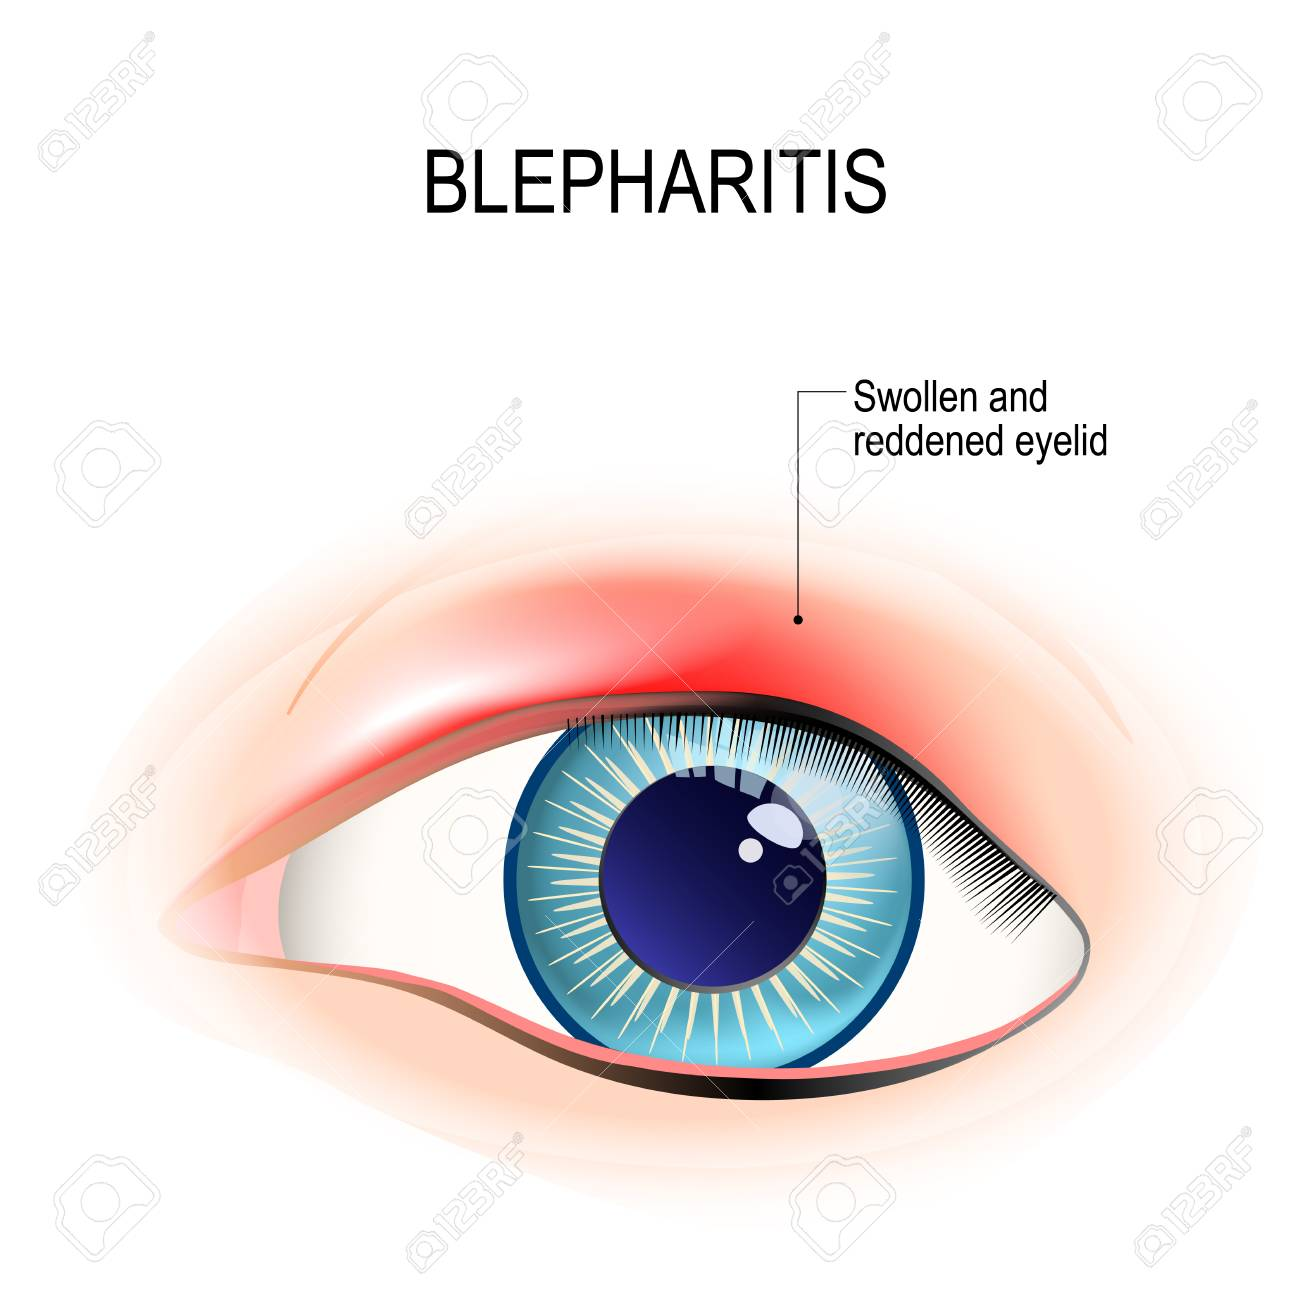 Eye of human. Blepharitis is a inflammation, and reddening of the eyelid. Human anatomy. Vector diagram for educational, and medical use. - 92465885